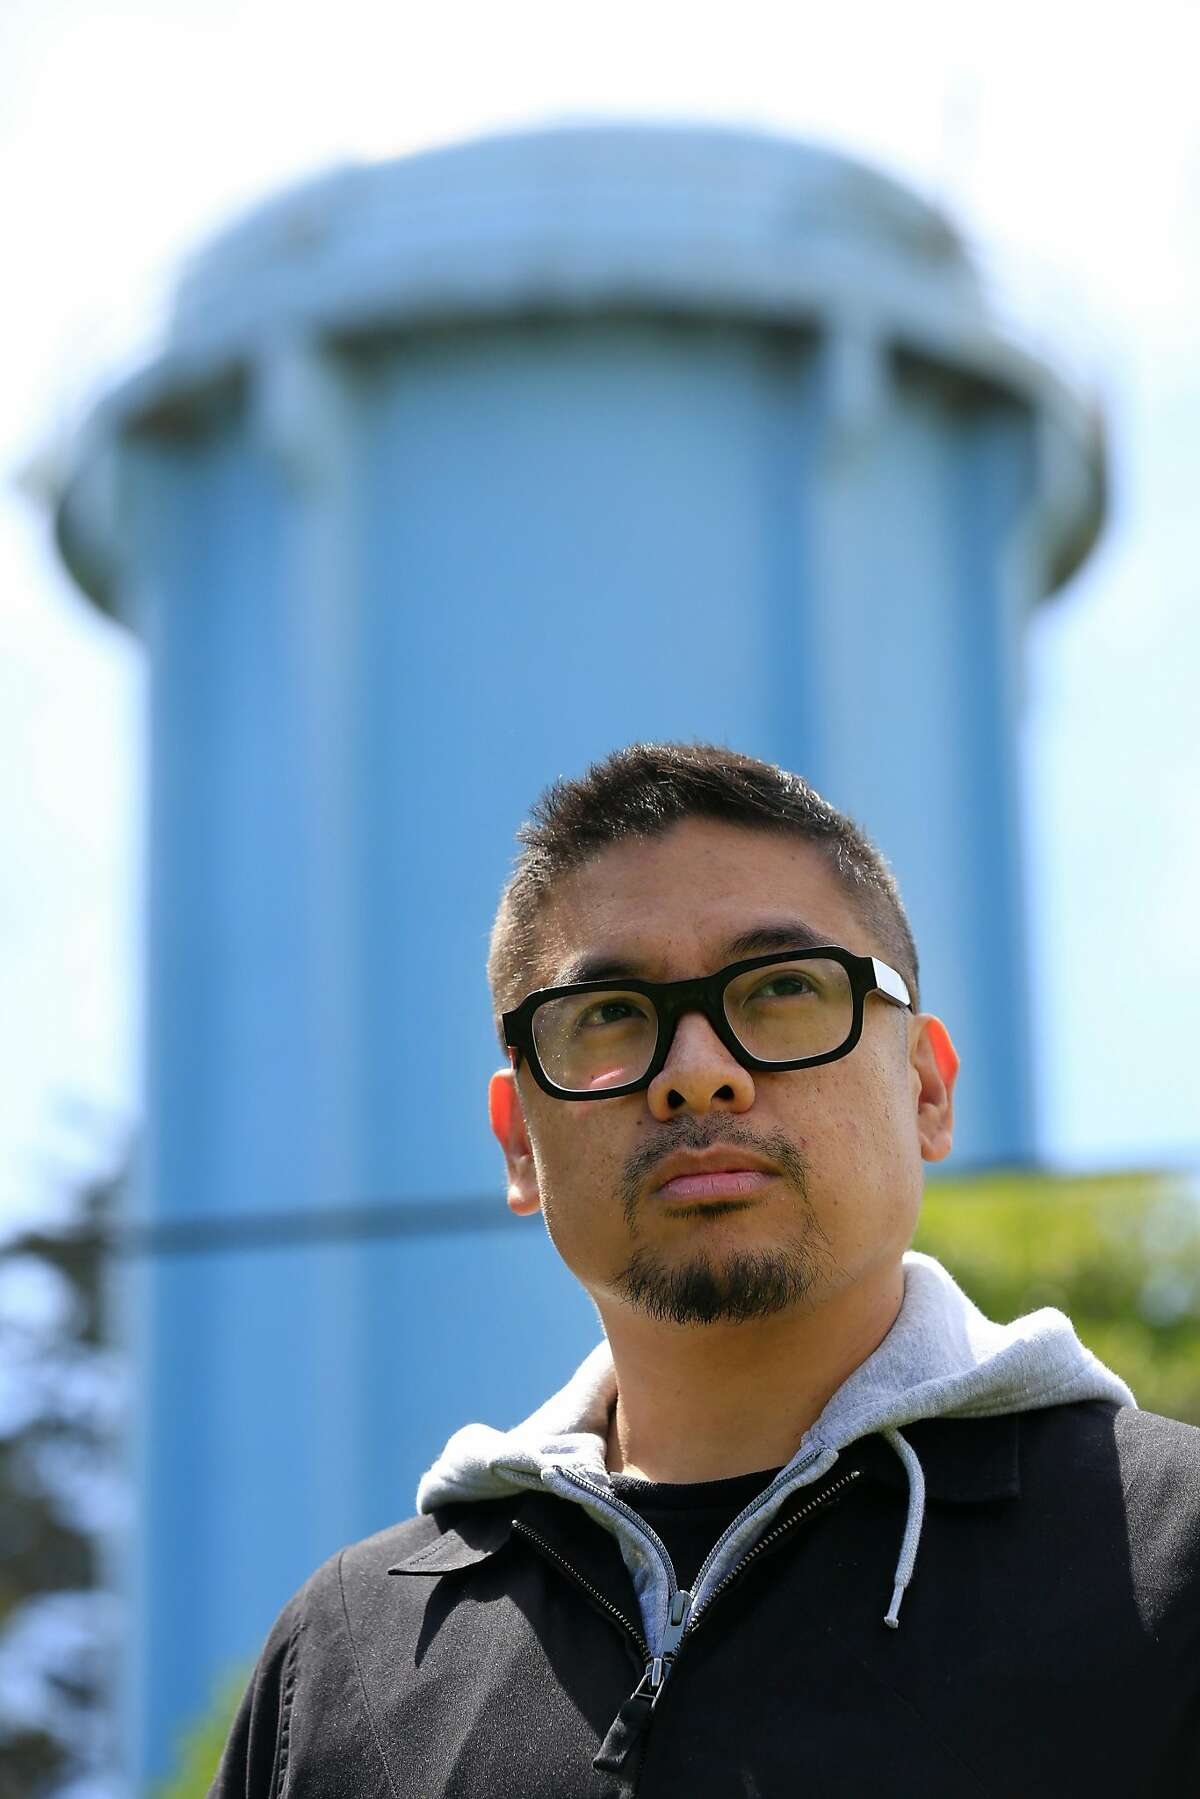 Filmmaker H.P. Mendoza stands for a portrait in the Excelsior District on Tuesday, April 24, 2018 in San Francisco, Calif.